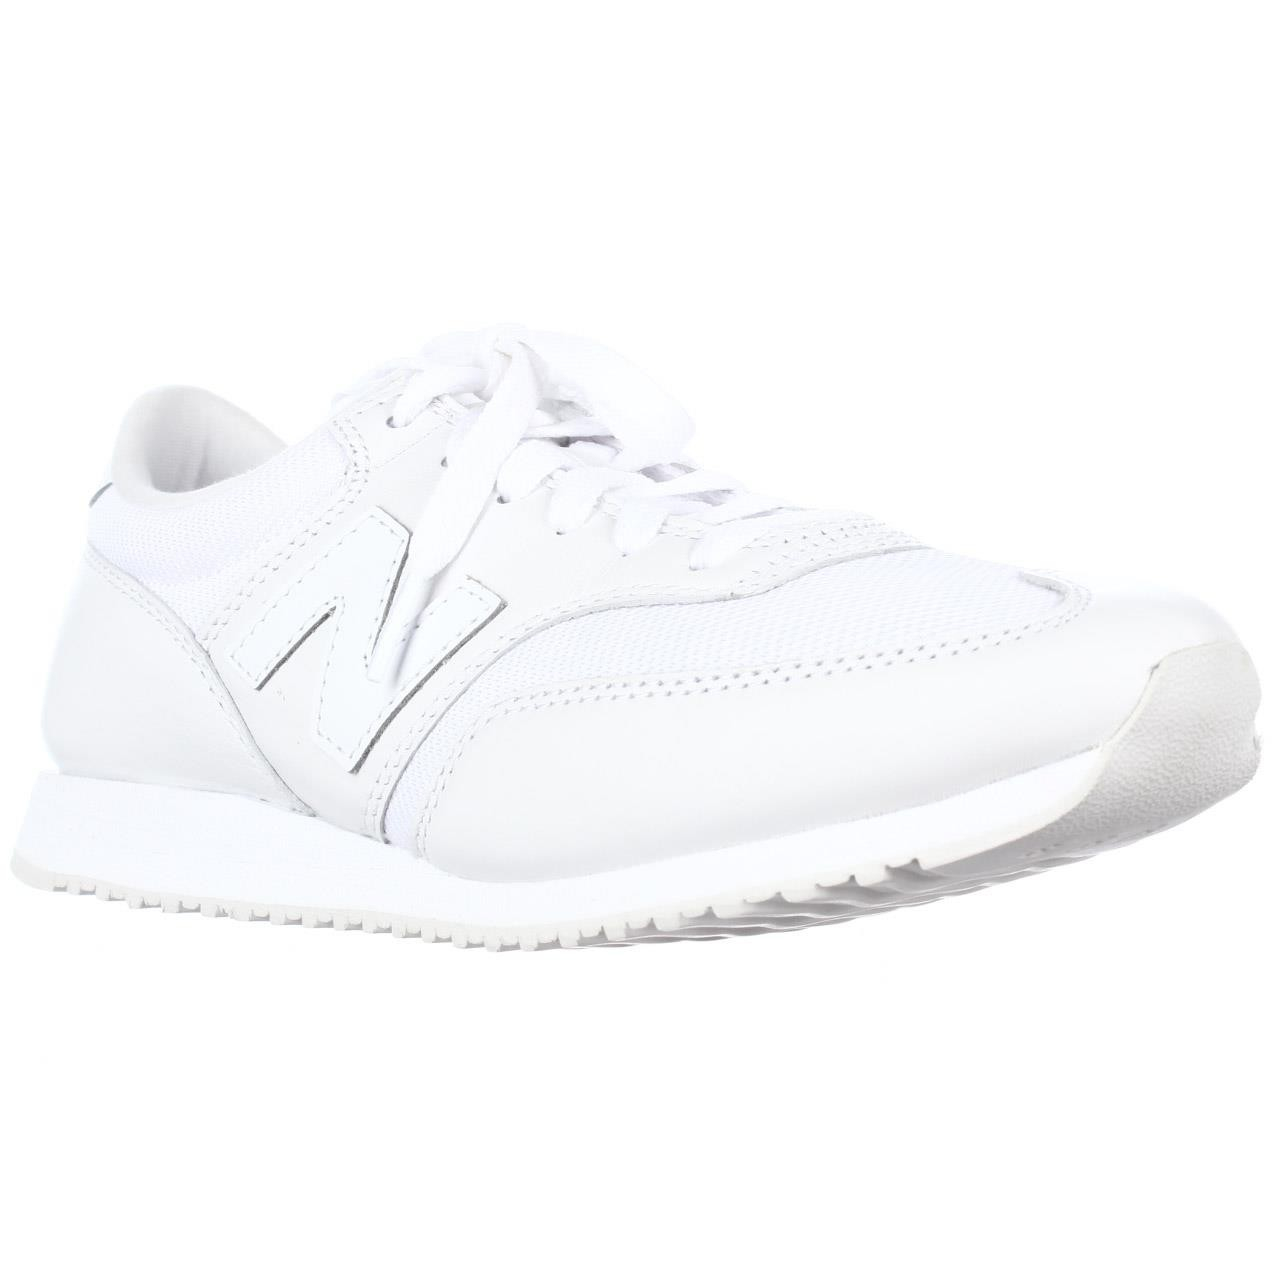 New Balance Mens Cm620 Summer White Out Pack Running Shoes